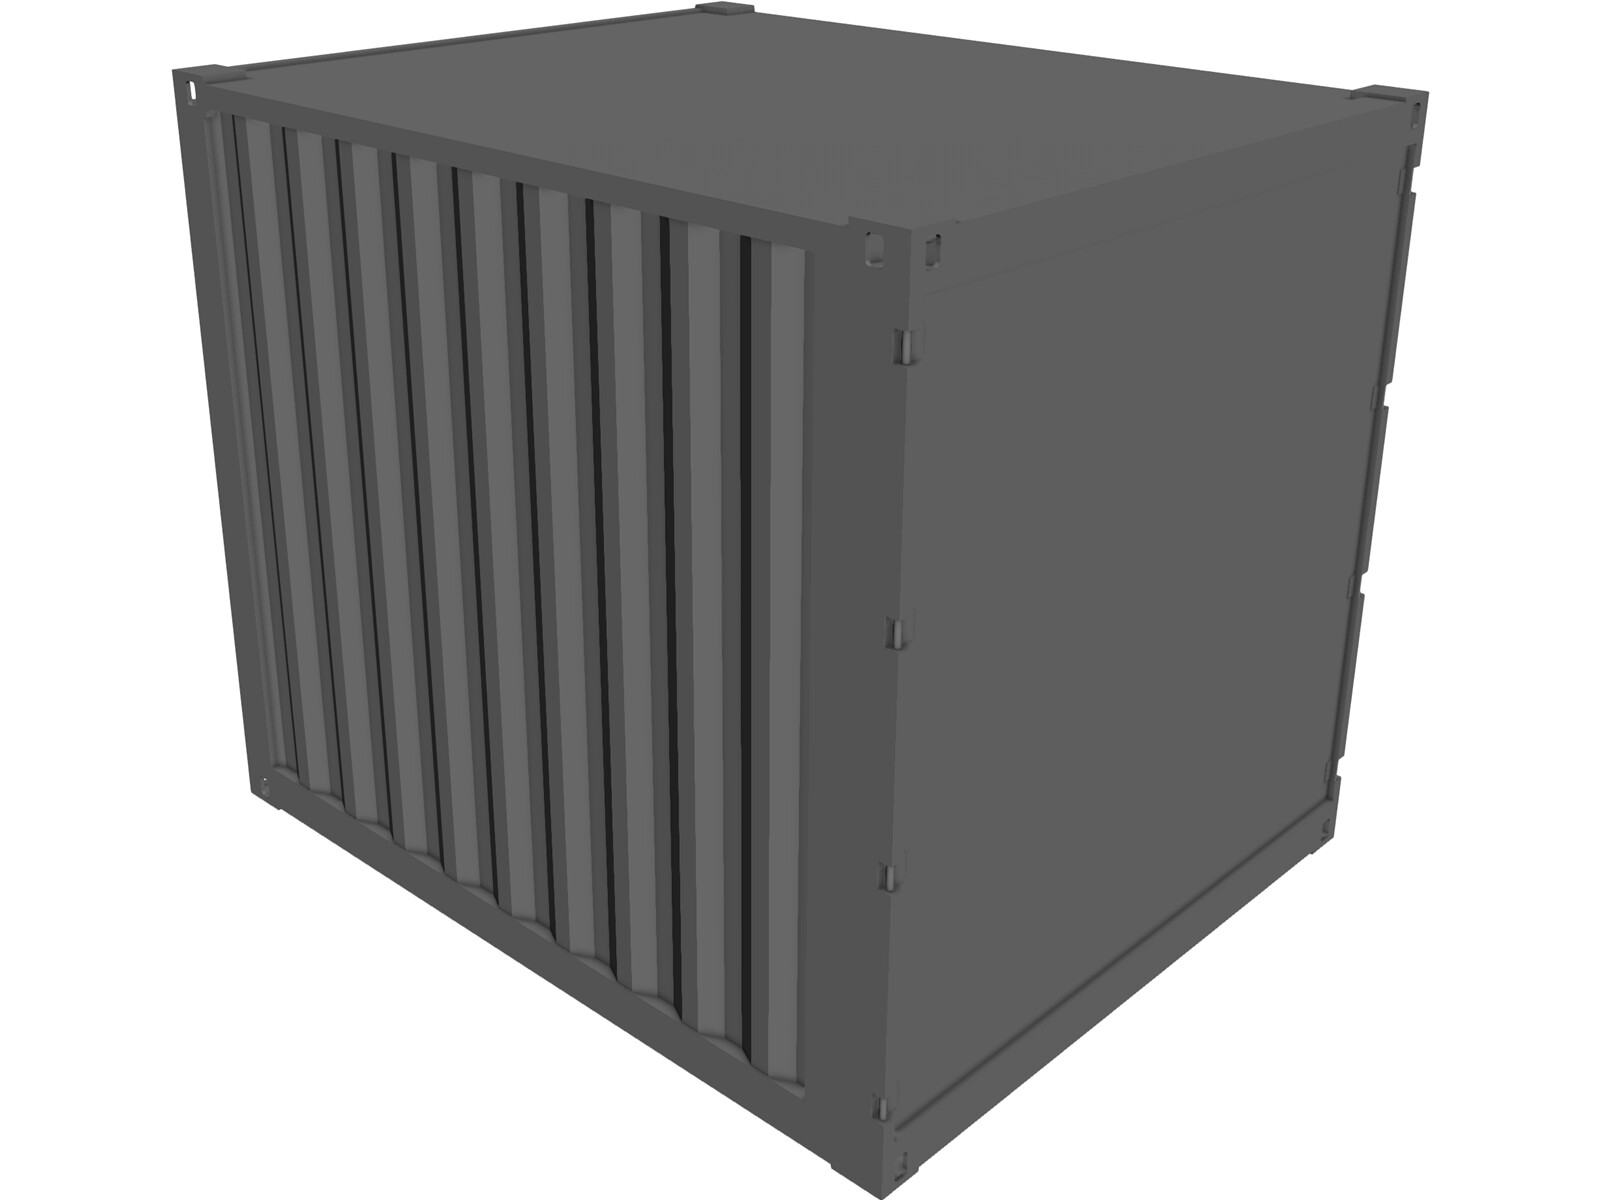 Container 10ft Shipping 3D CAD Model - 3D CAD Browser